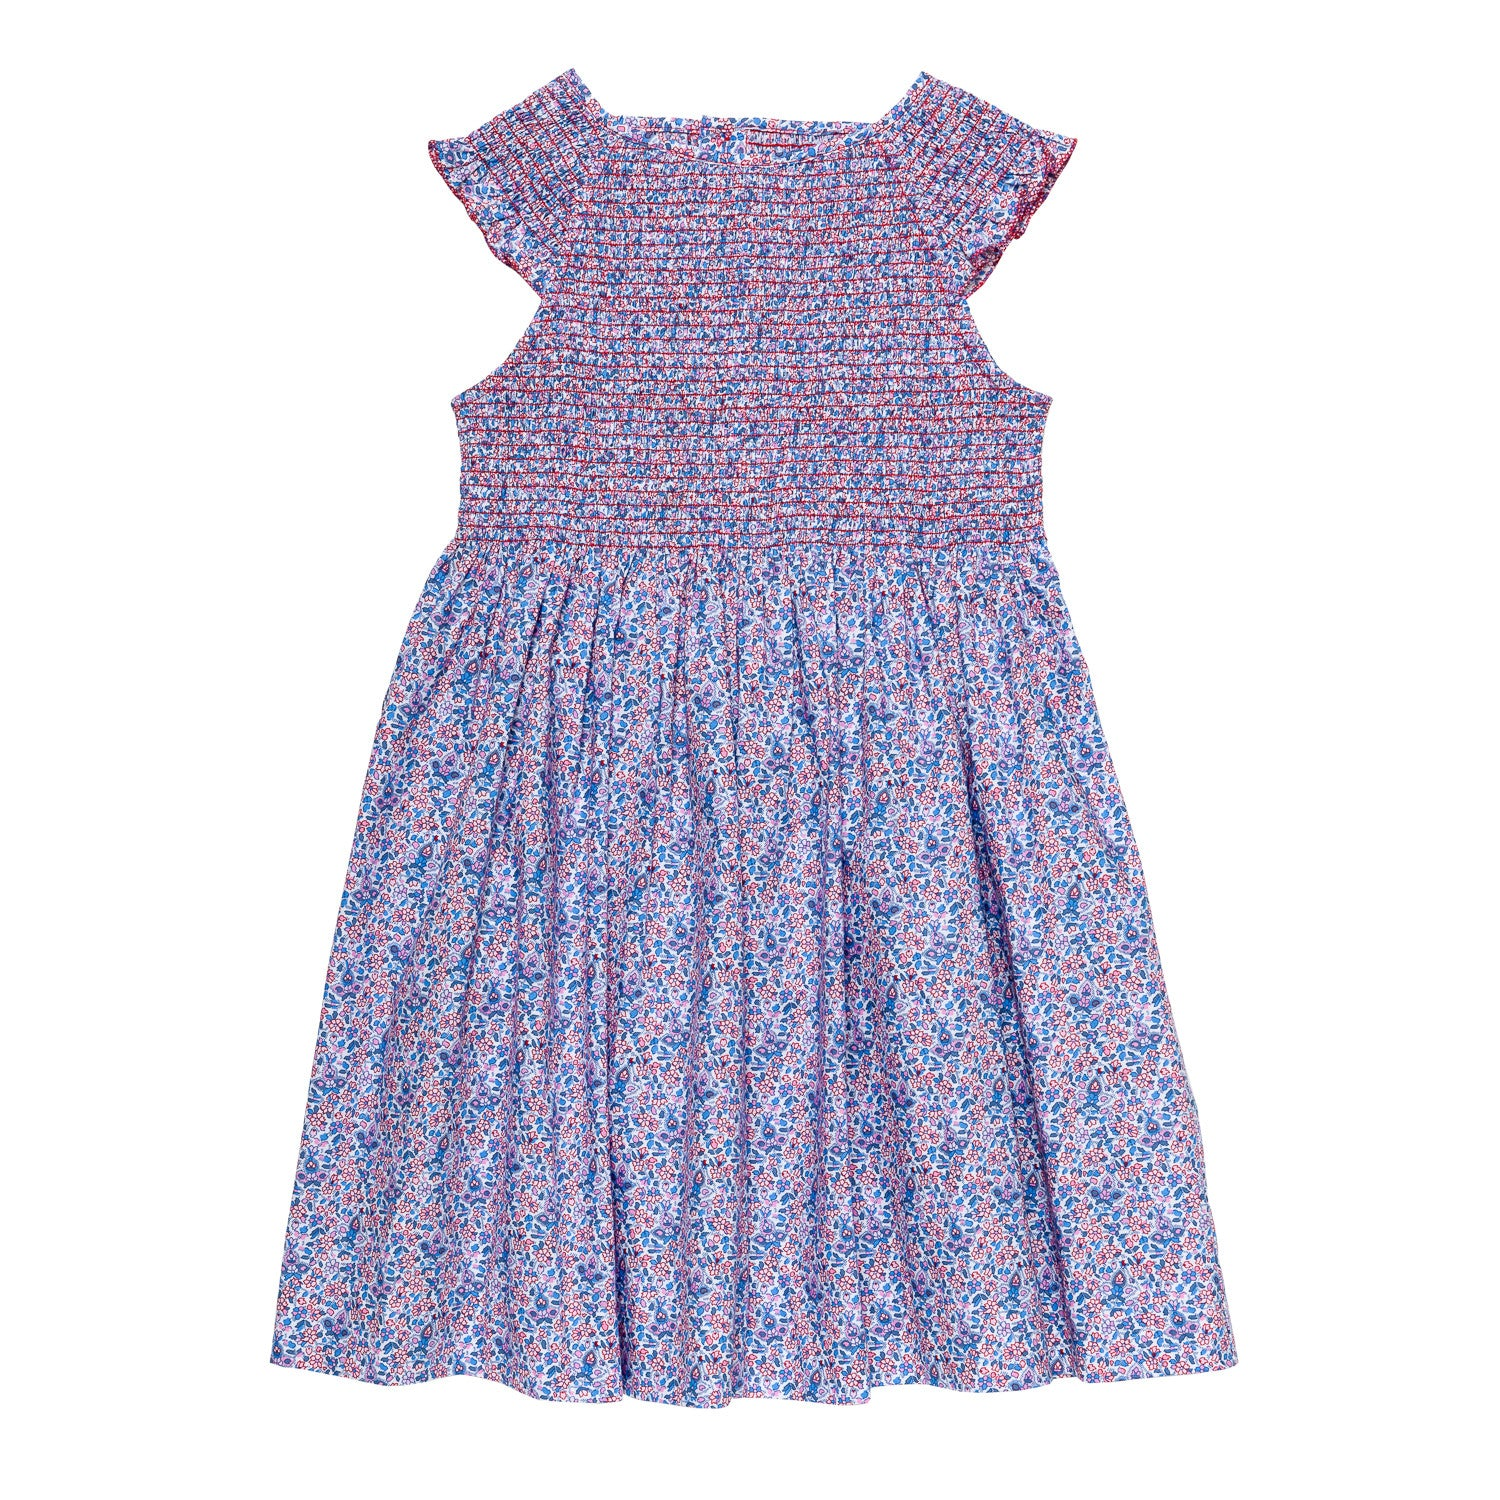 Jardin floral smocked dress for Jardin floral